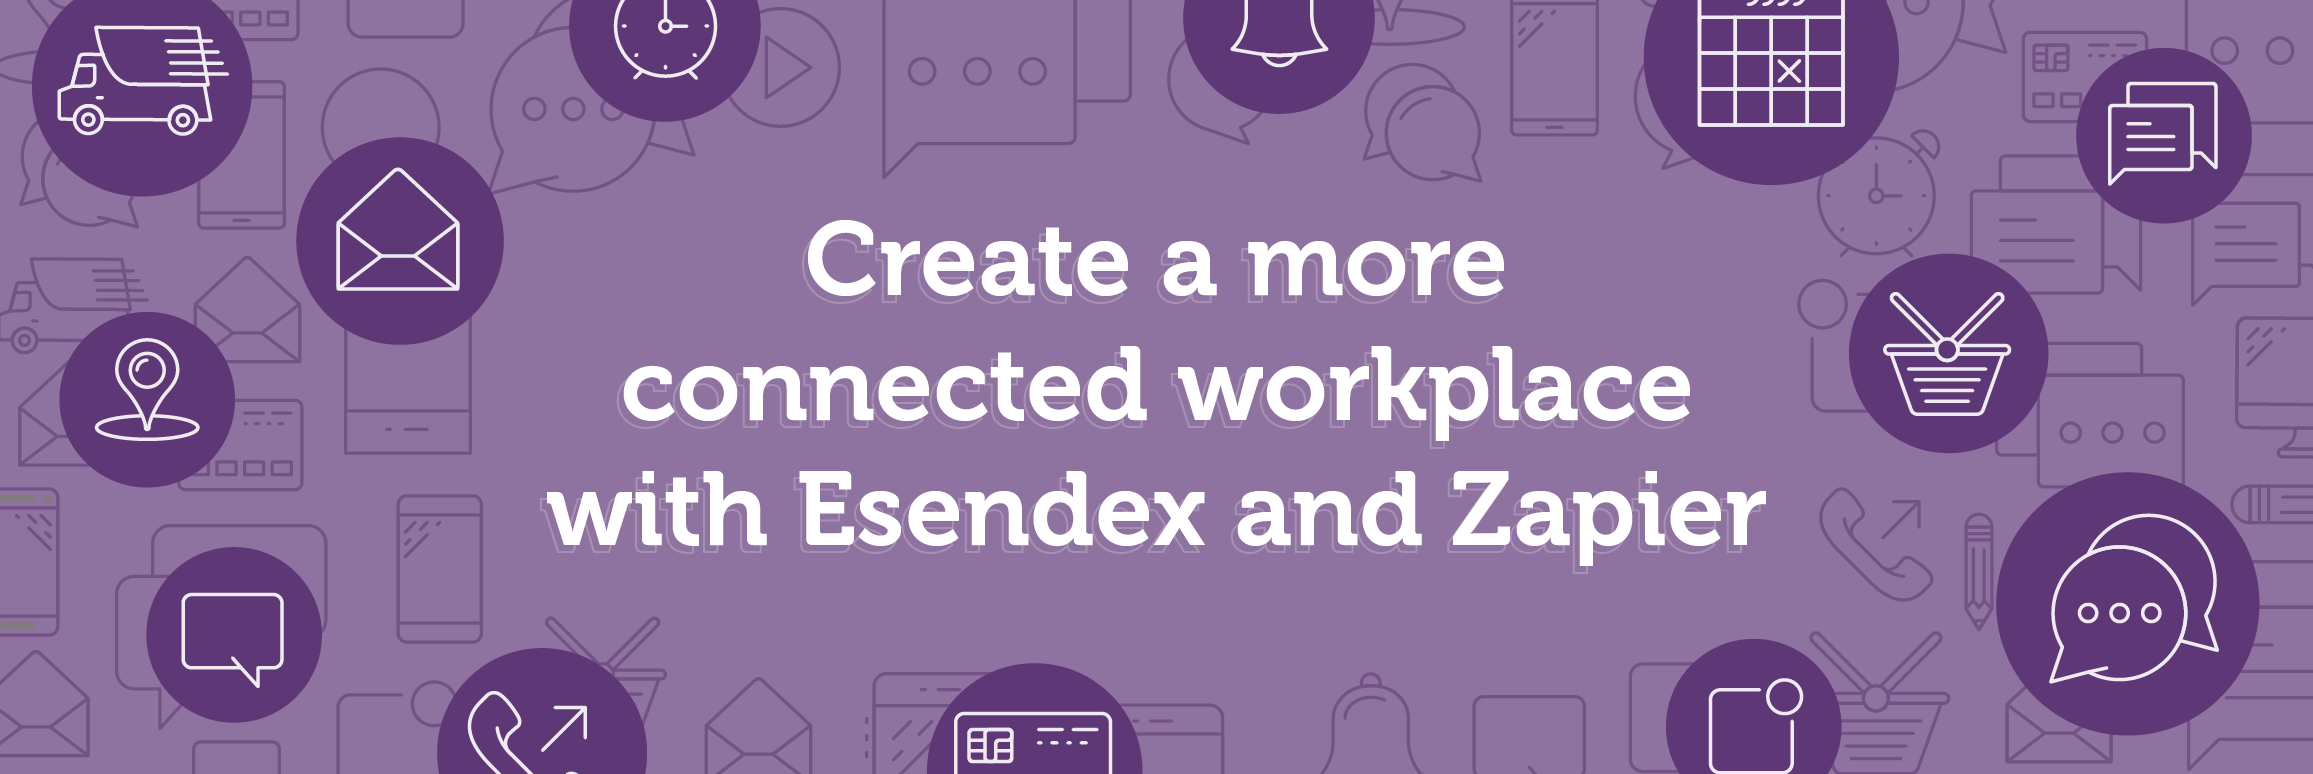 Create a more connected workplace with Esendex and Zapier